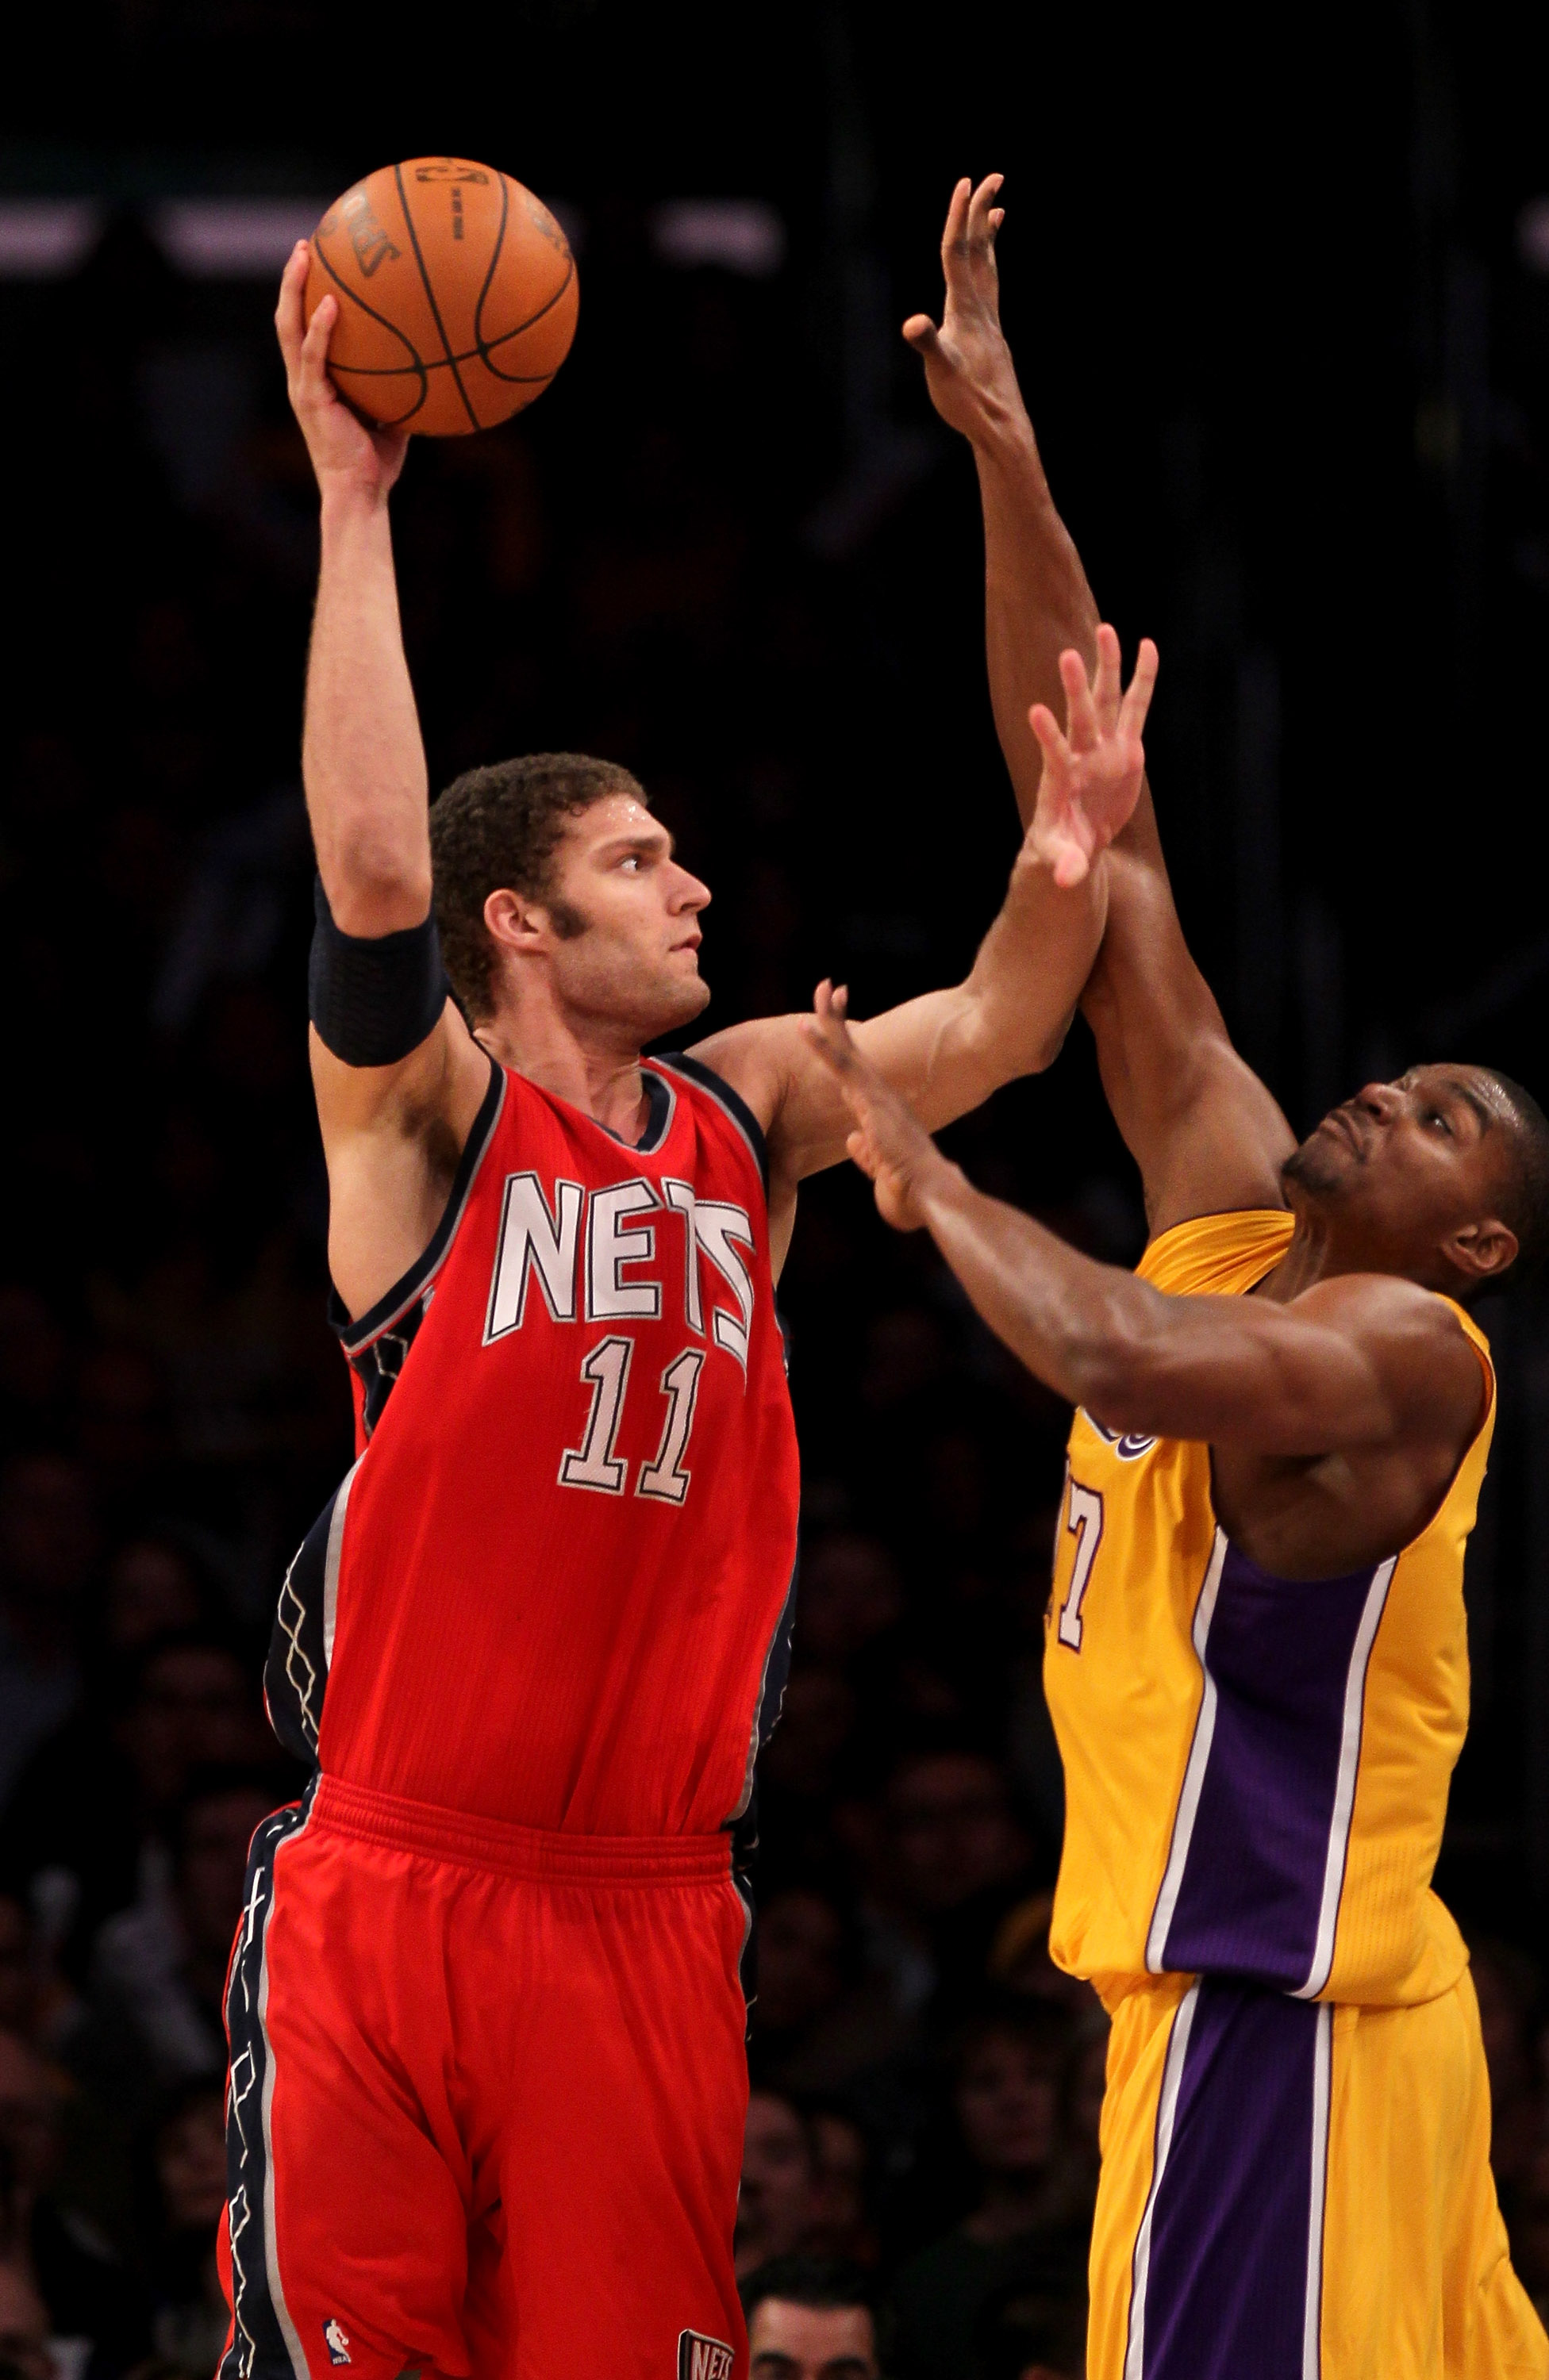 LOS ANGELES, CA - JANUARY 14: Brook Lopez #11 of the New Jersey Nets shoots over Andrew Bynum #17 of the Los Angeles Lakers at Staples Center on January 14, 2011 in Los Angeles, California. The Lakers won 100-88.  NOTE TO USER: User expressly acknowledges